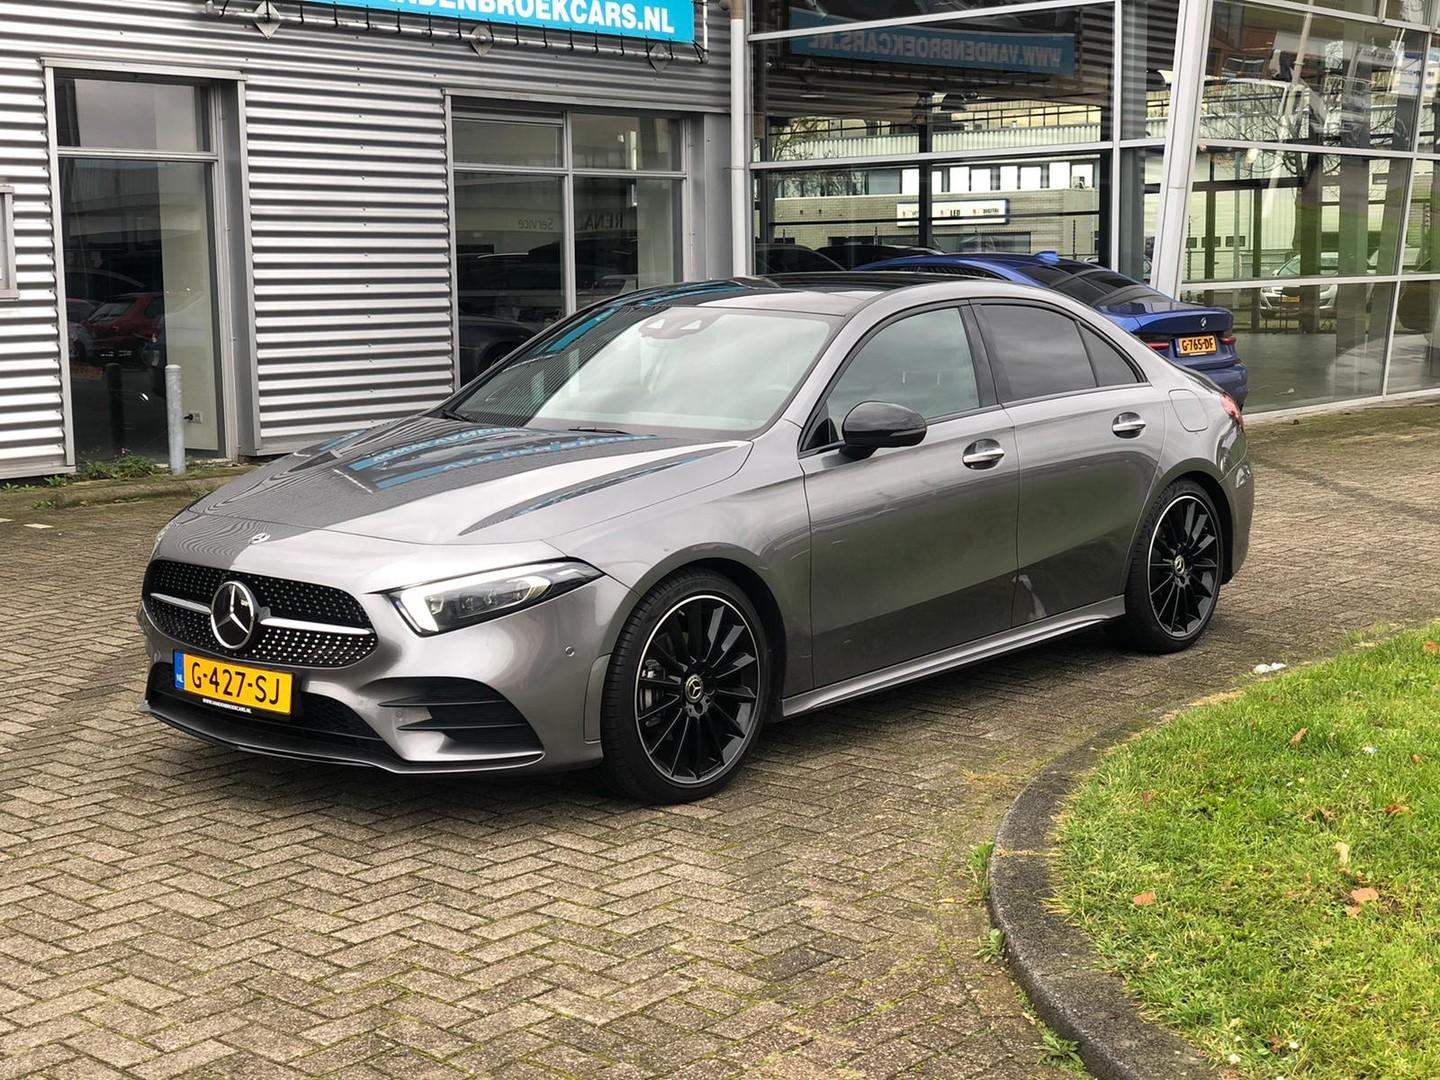 Mercedes-benz A-klasse 200 limousine / amg / pano/ 19' / alle opties / np 56.000!!